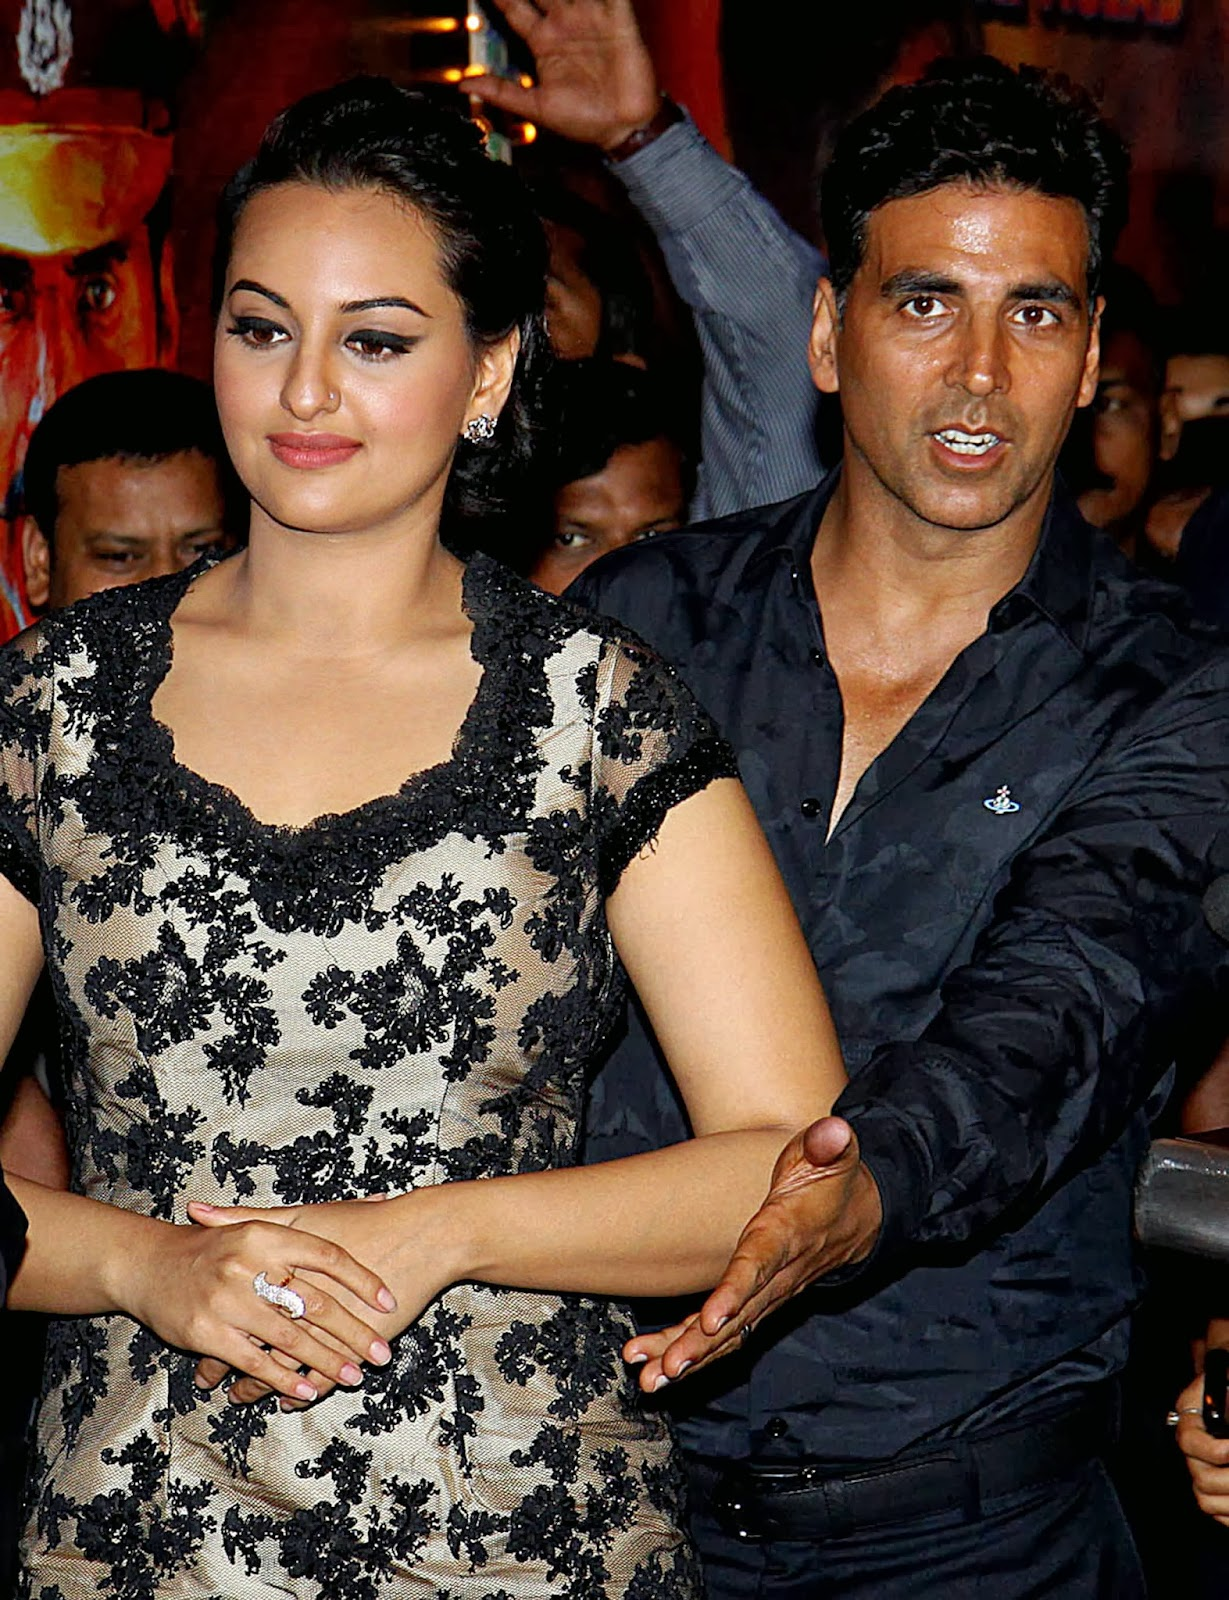 2014 movies, A.R. Murugadoss, Akshay Kumar, Bollywood, Entertainment, Hindi Film, Holiday, India, Movie, News, Review, Rowdy Rathore, Showbiz, Sonakshi Sinha, Trailer, Vipul Shah,